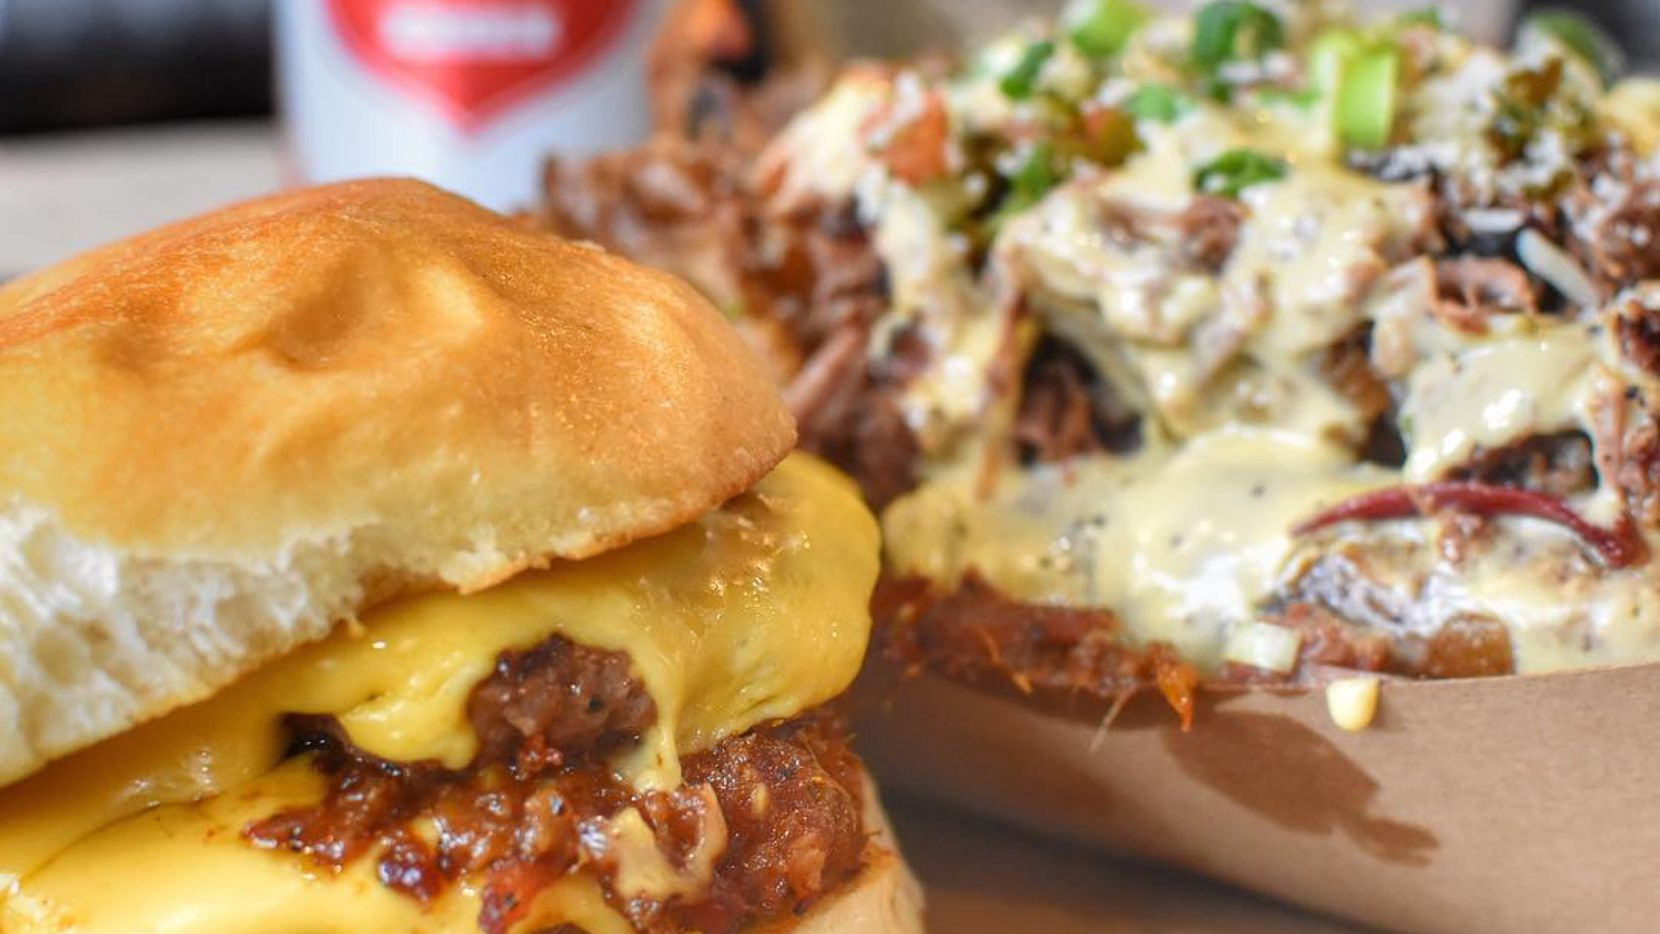 Heim BBQ in Fort Worth is selling burgers on Mondays after 4 p.m.